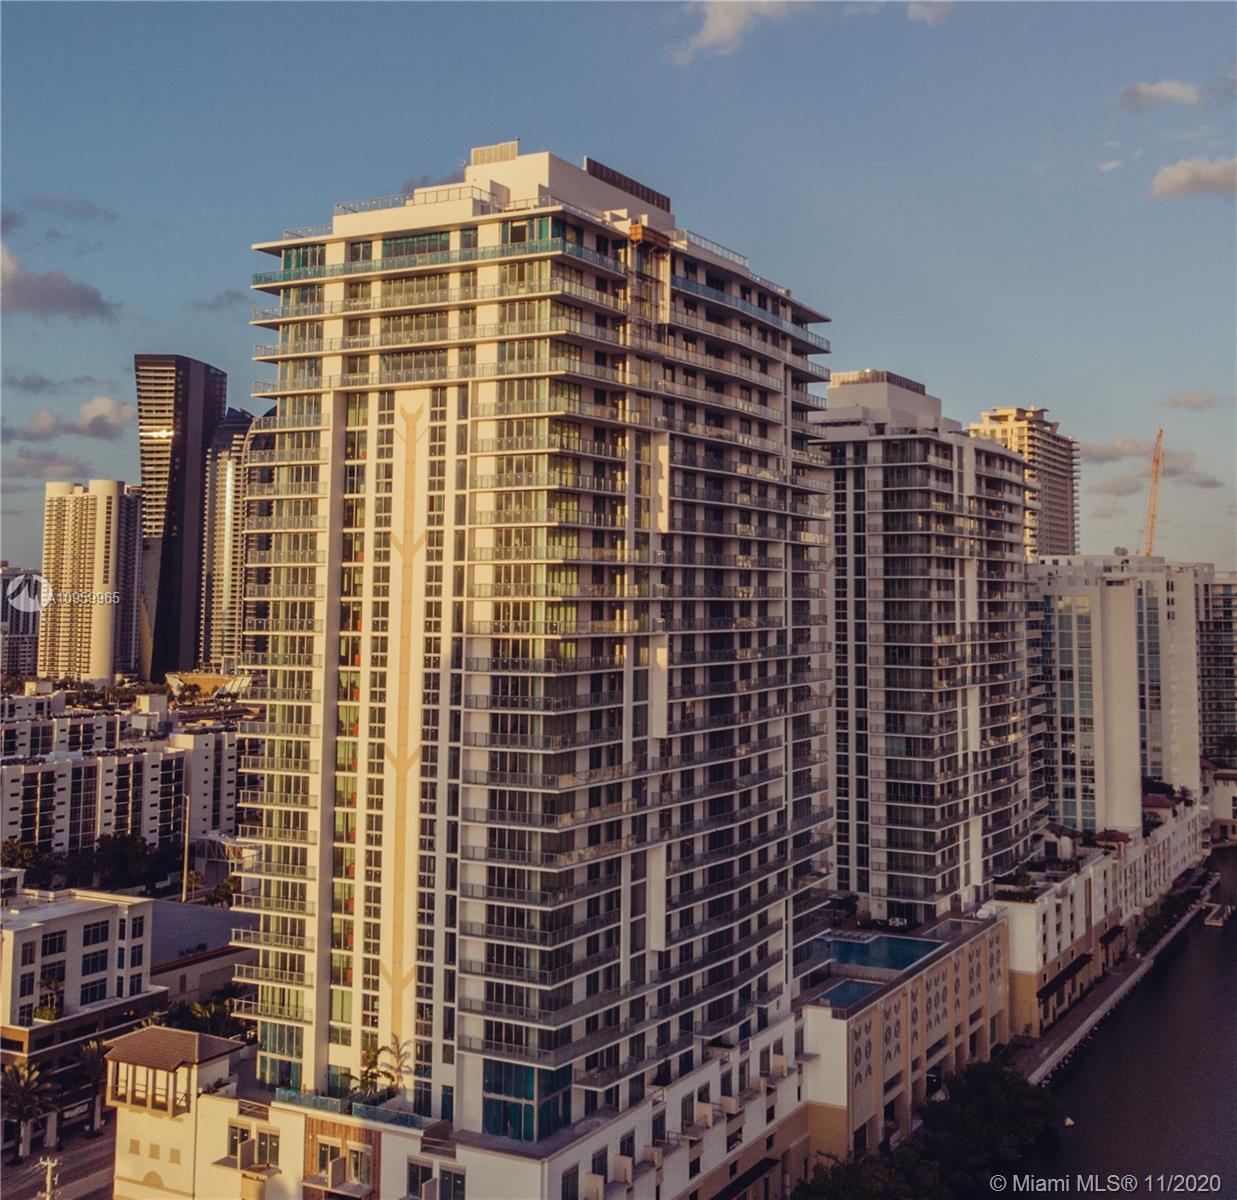 Buying your dream apartment in Sunny Isles Beach just got so much better! Customize your unit to you